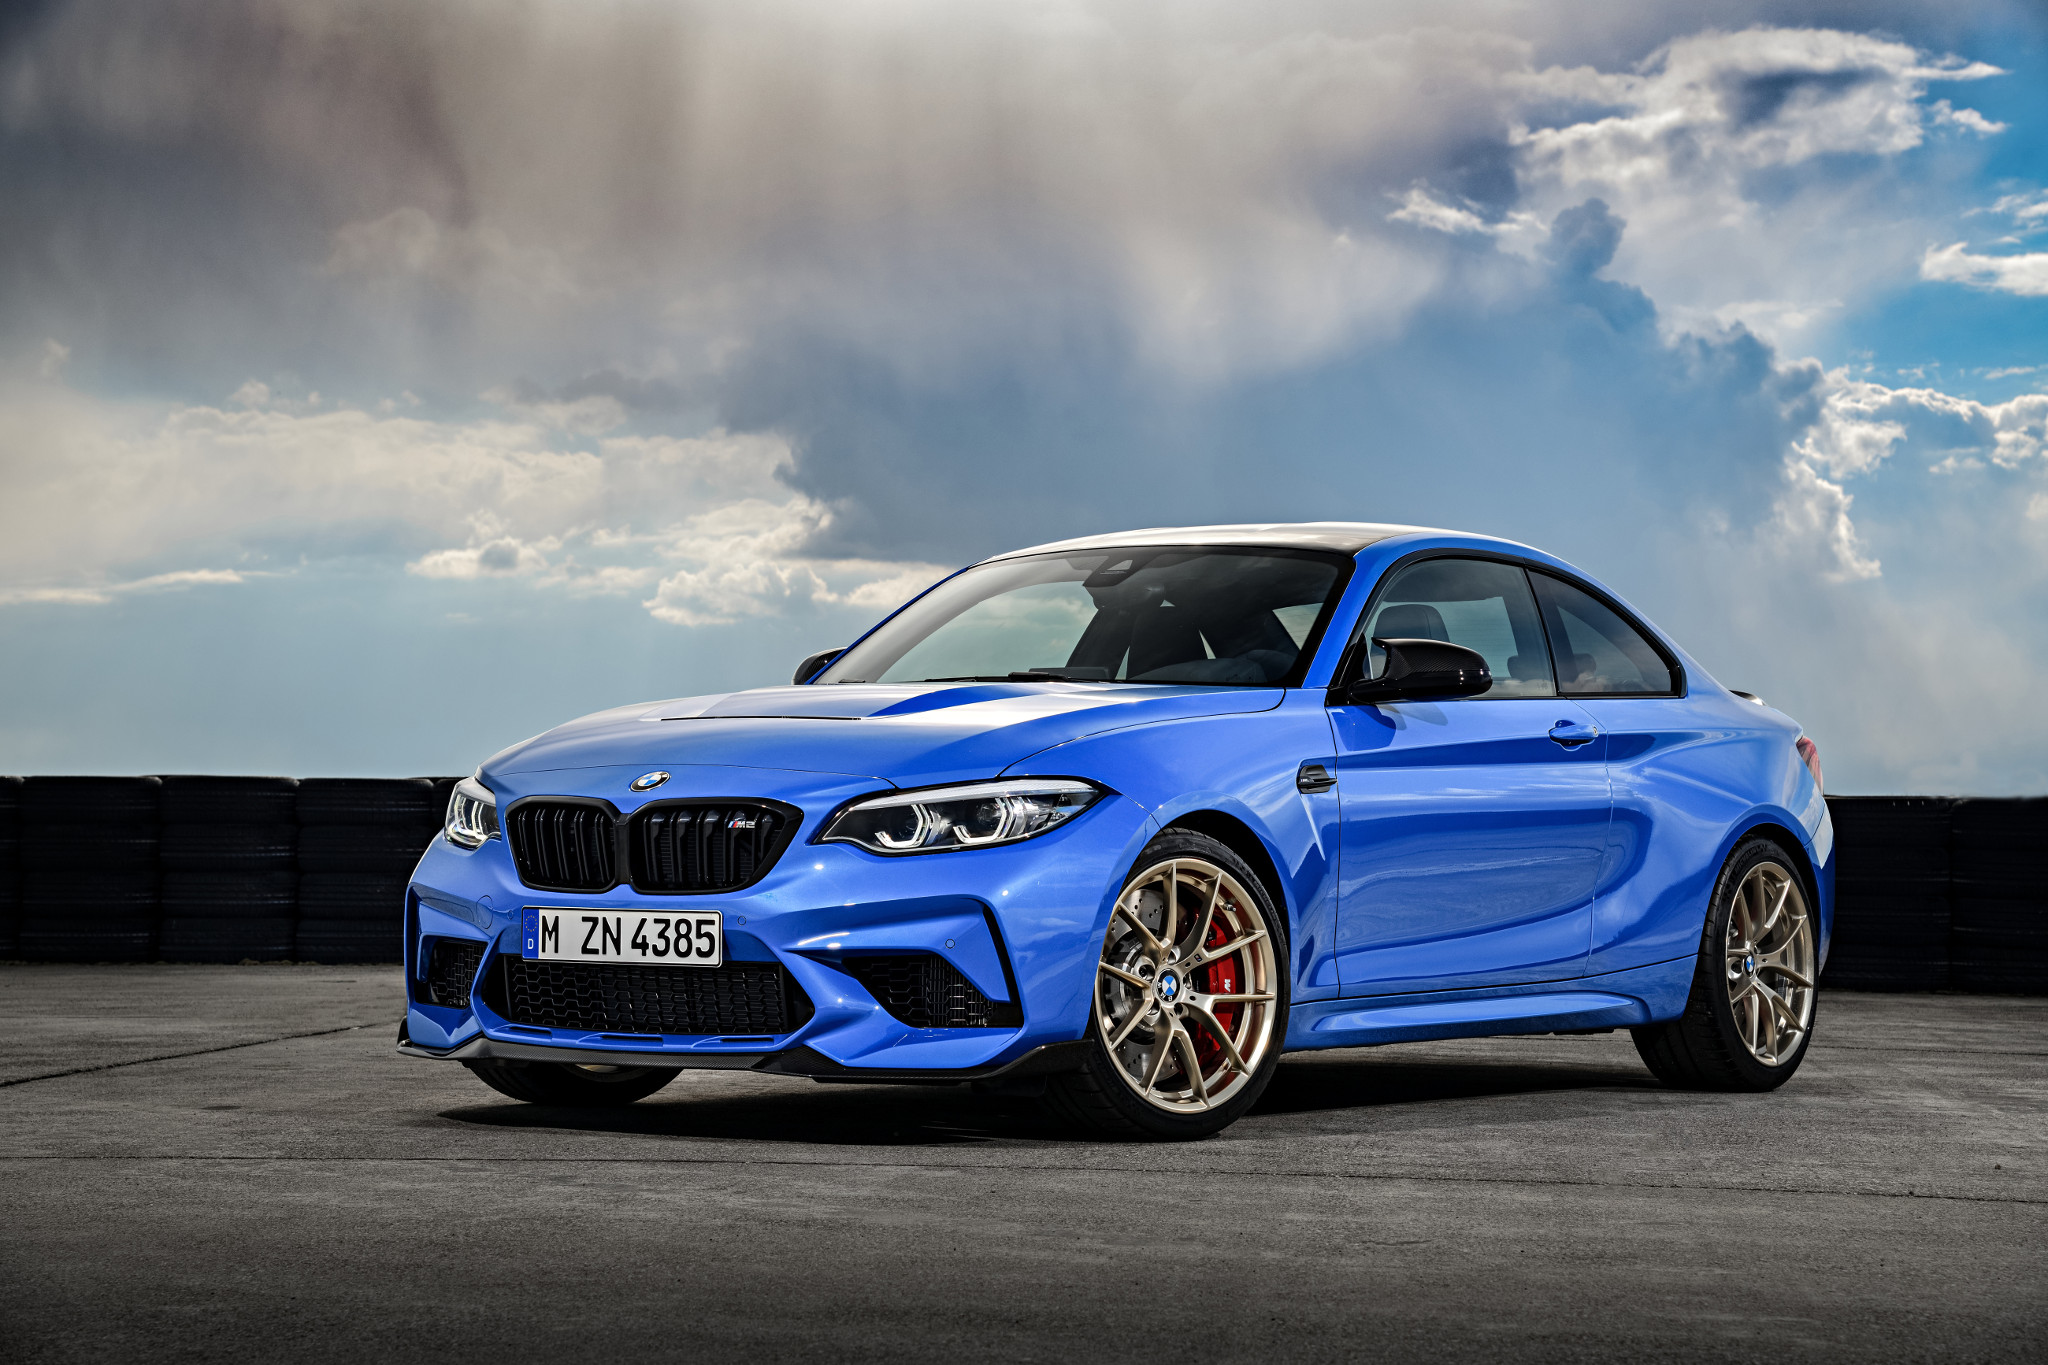 BMW Packs More Heat Into Small Package With 2020 M2 CS Coupe